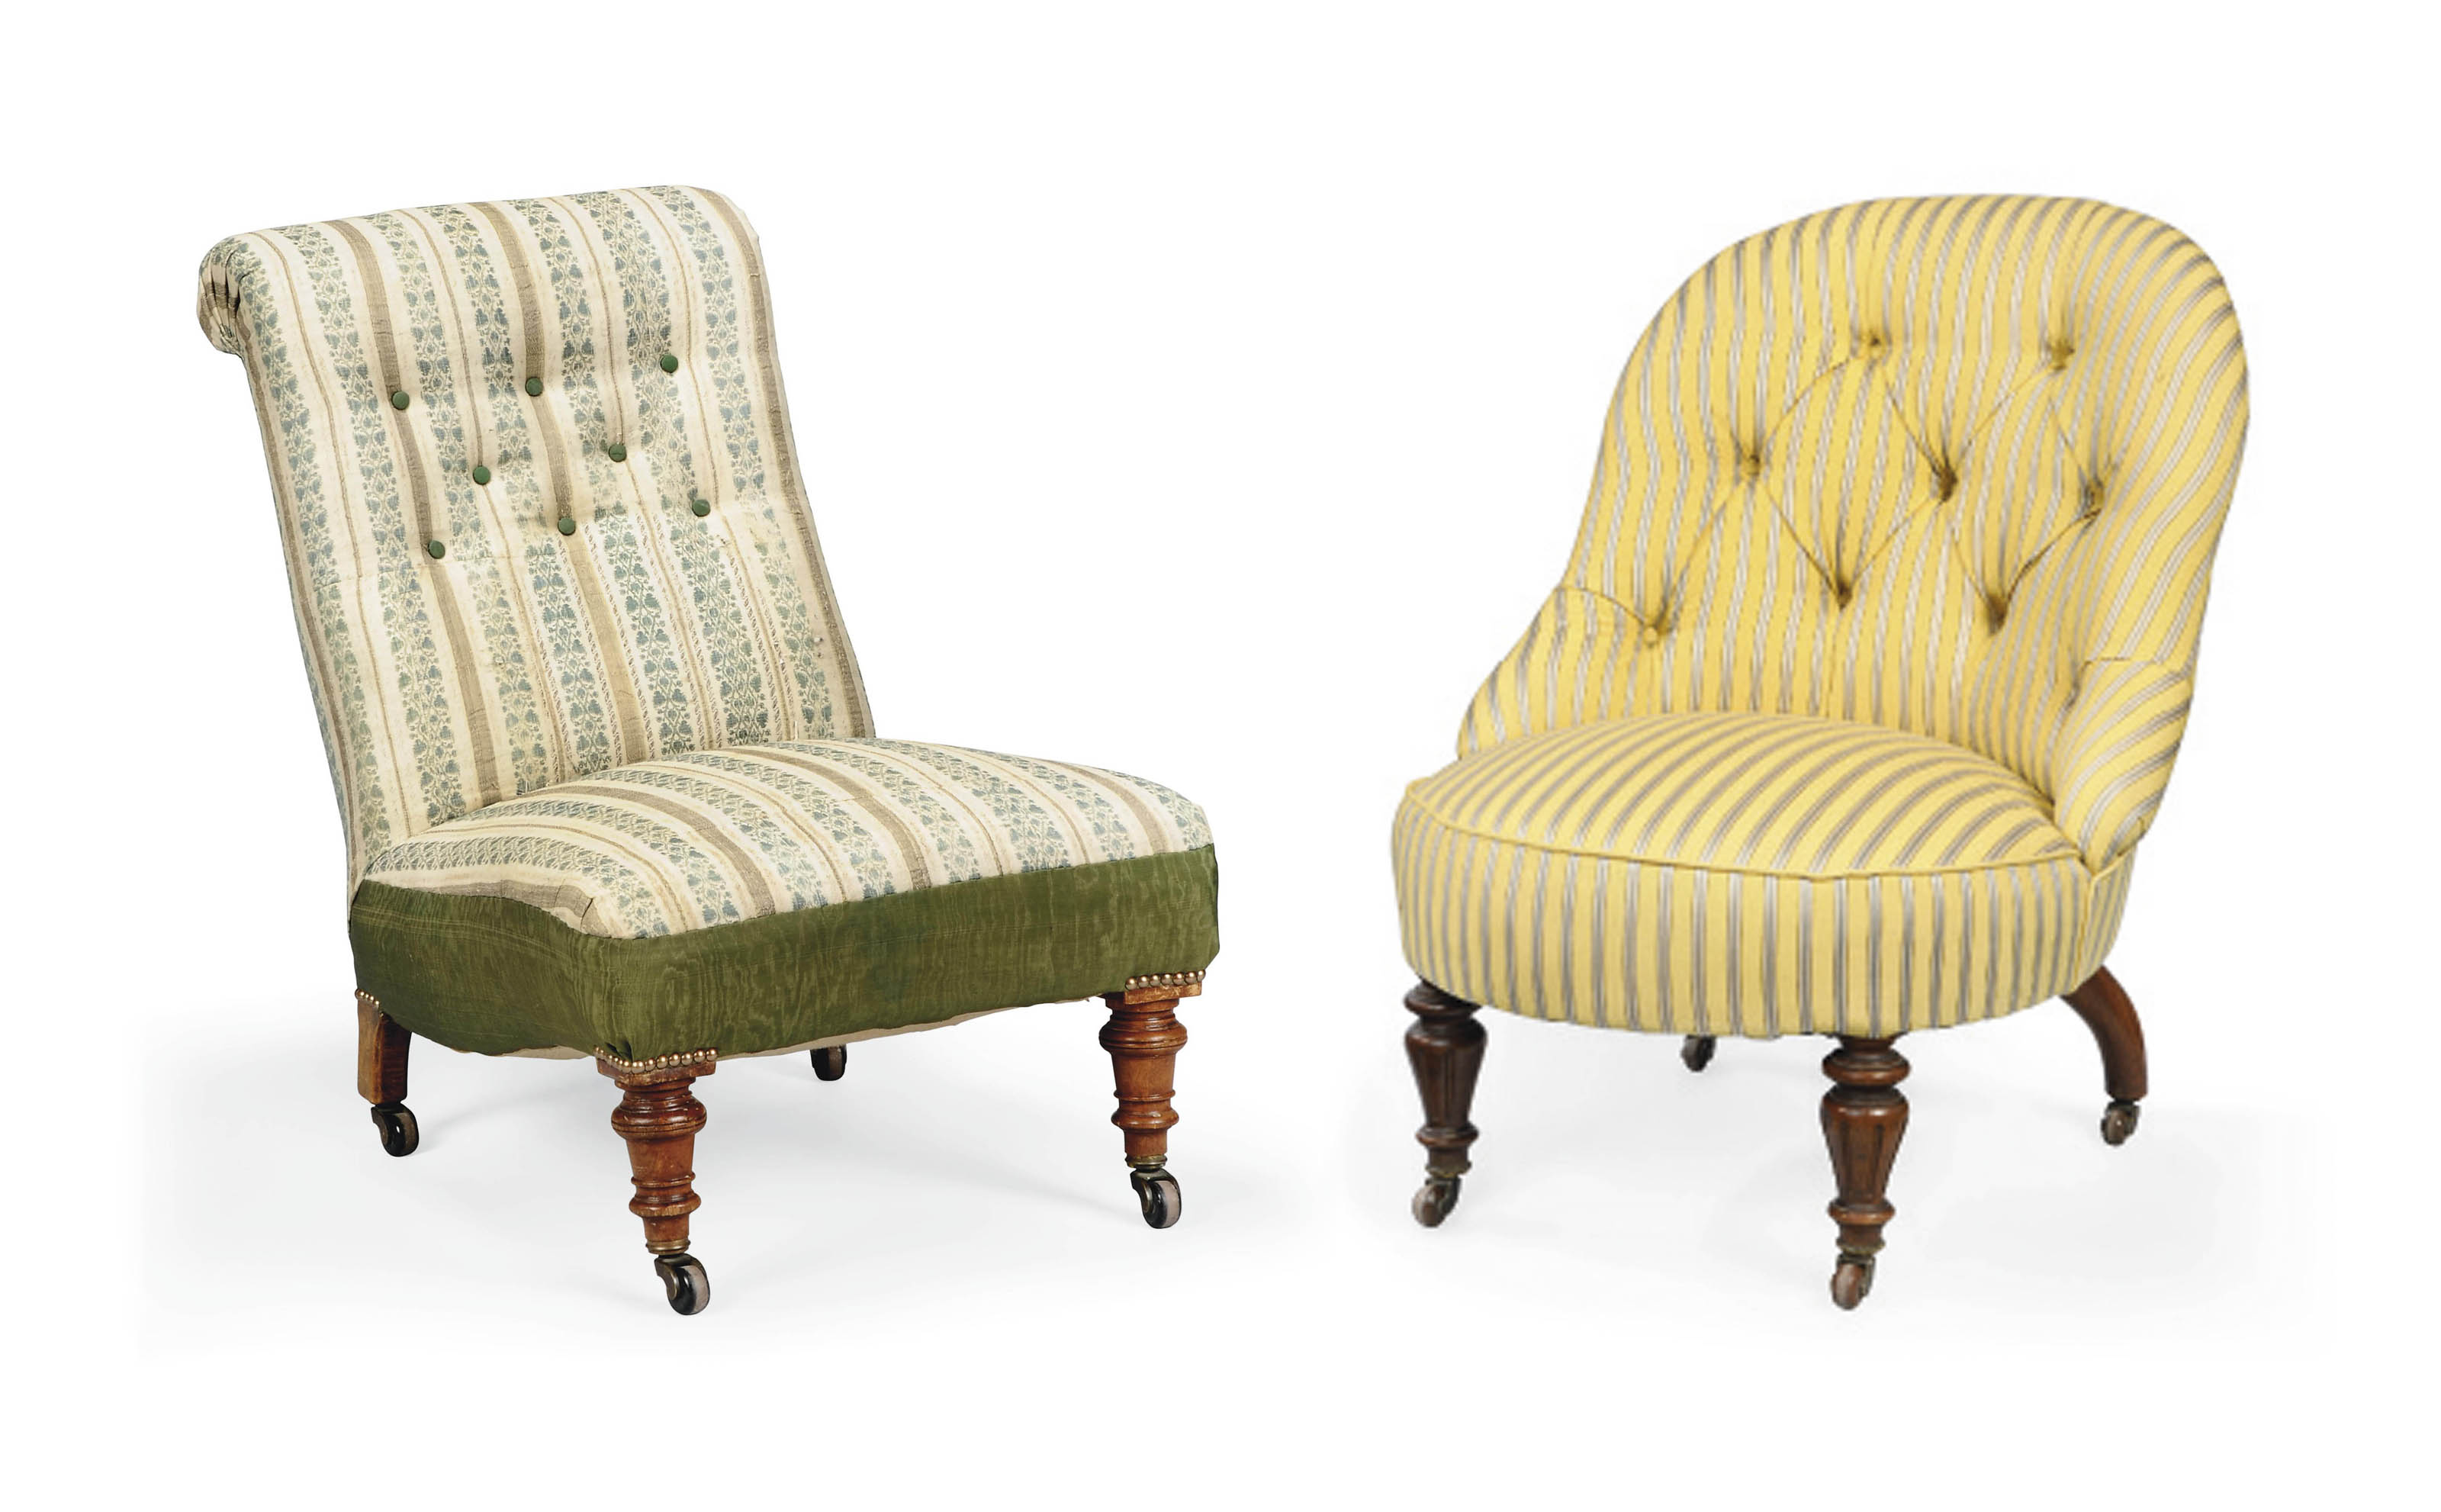 TWO VICTORIAN WALNUT LOW CHAIRS